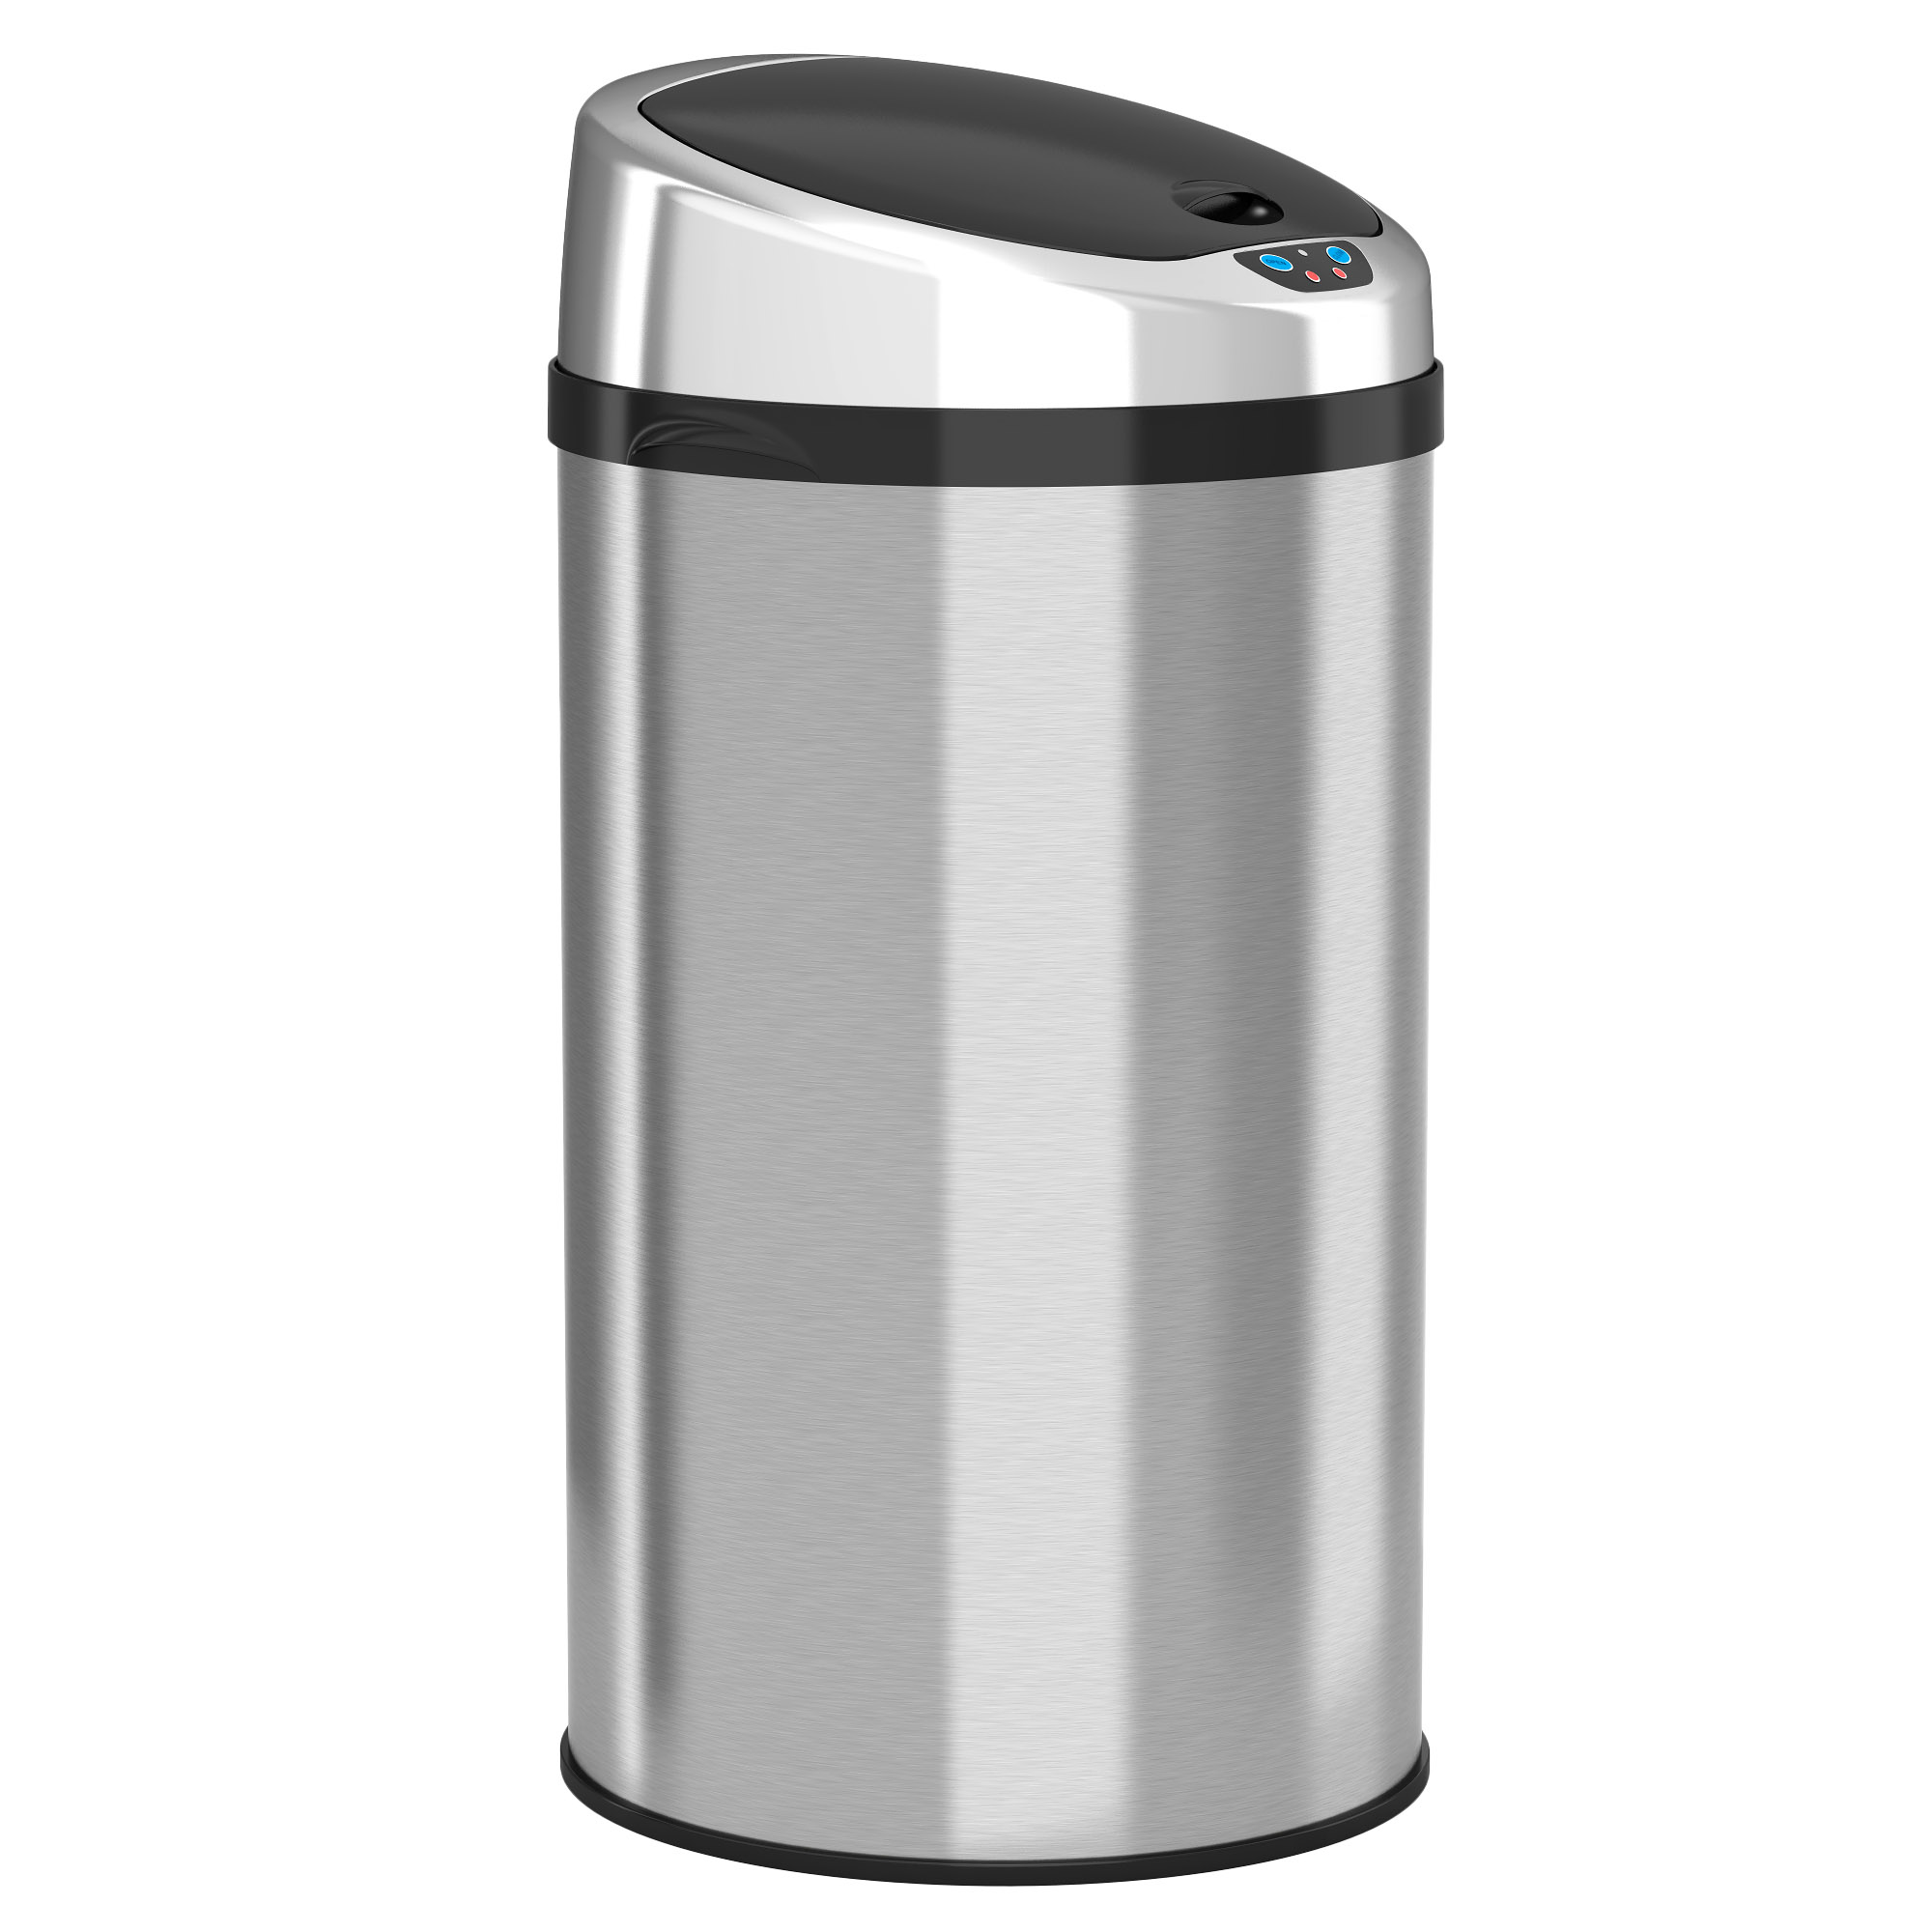 iTouchless 8 Gallon Automatic Trash Can with Infrared-Sensor Lid, Stainless Steel by iTouchless Housewares & Products Inc